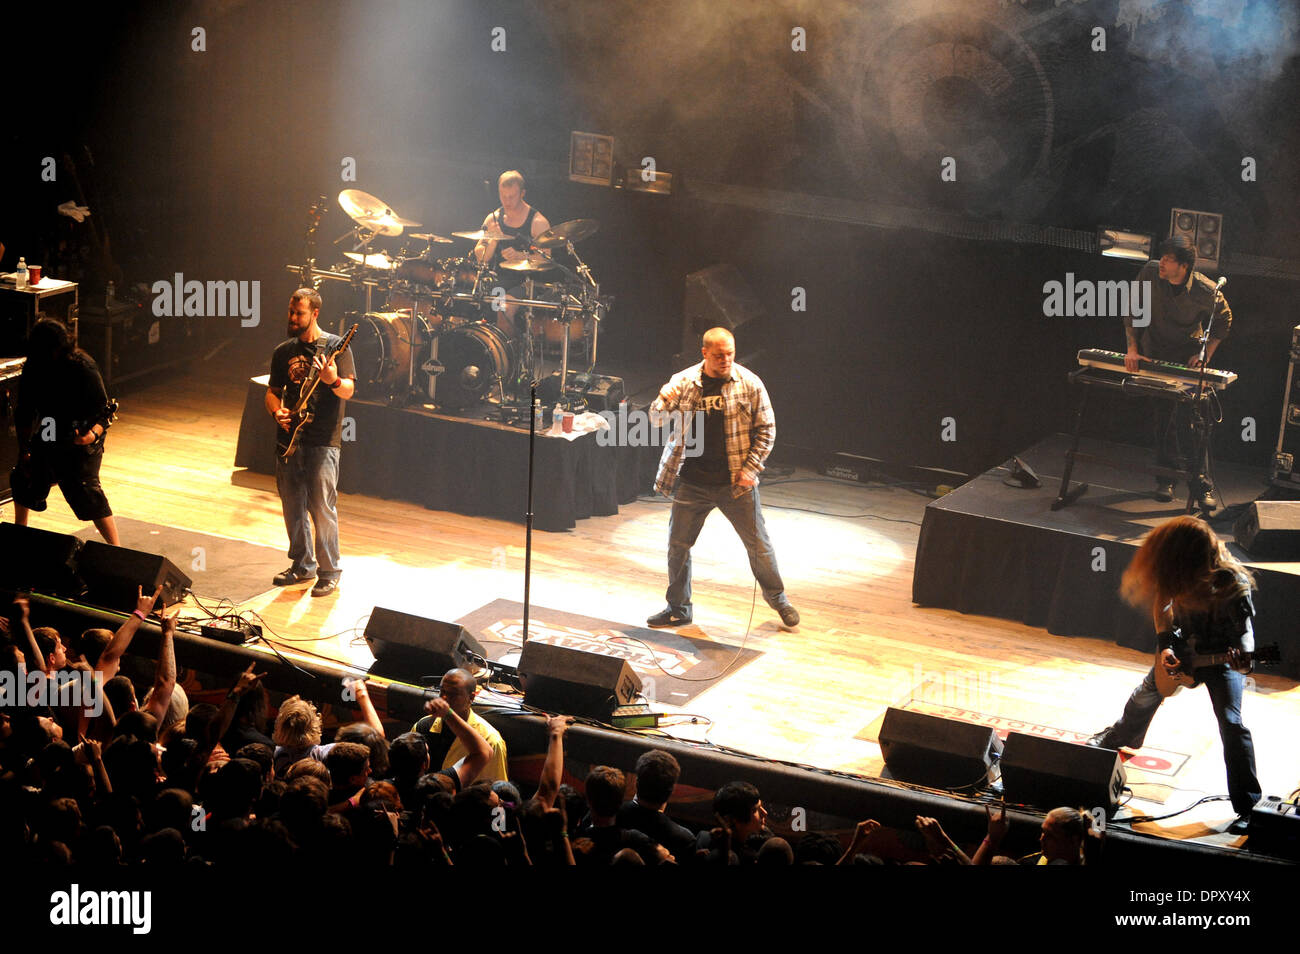 Apr 10, 2009 - Myrtle Beach, South Carolina, USA - Musicians of the band Chimaira perform a live concert show as their 2009 tour makes a stop at the House of Blues located in Myrtle Beach. The American metal band from Ohio has been together since 1998. (Credit Image: © Jason Moore/ZUMA Press) - Stock Image